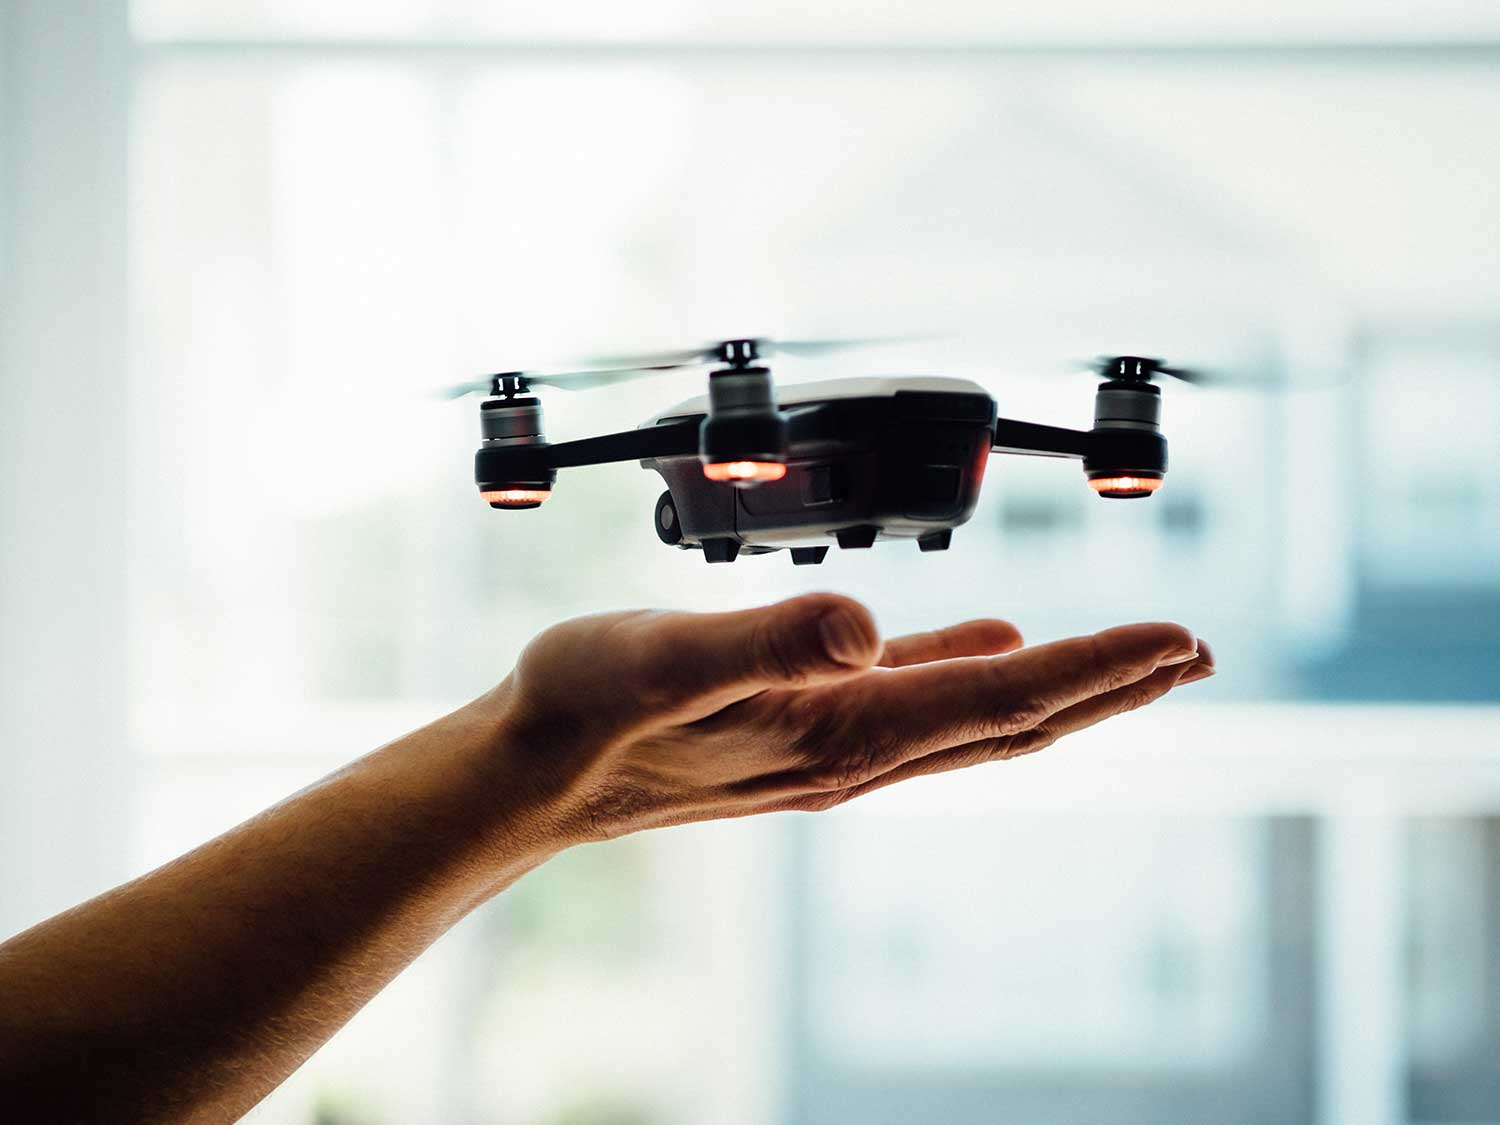 Drone hovering over hand.